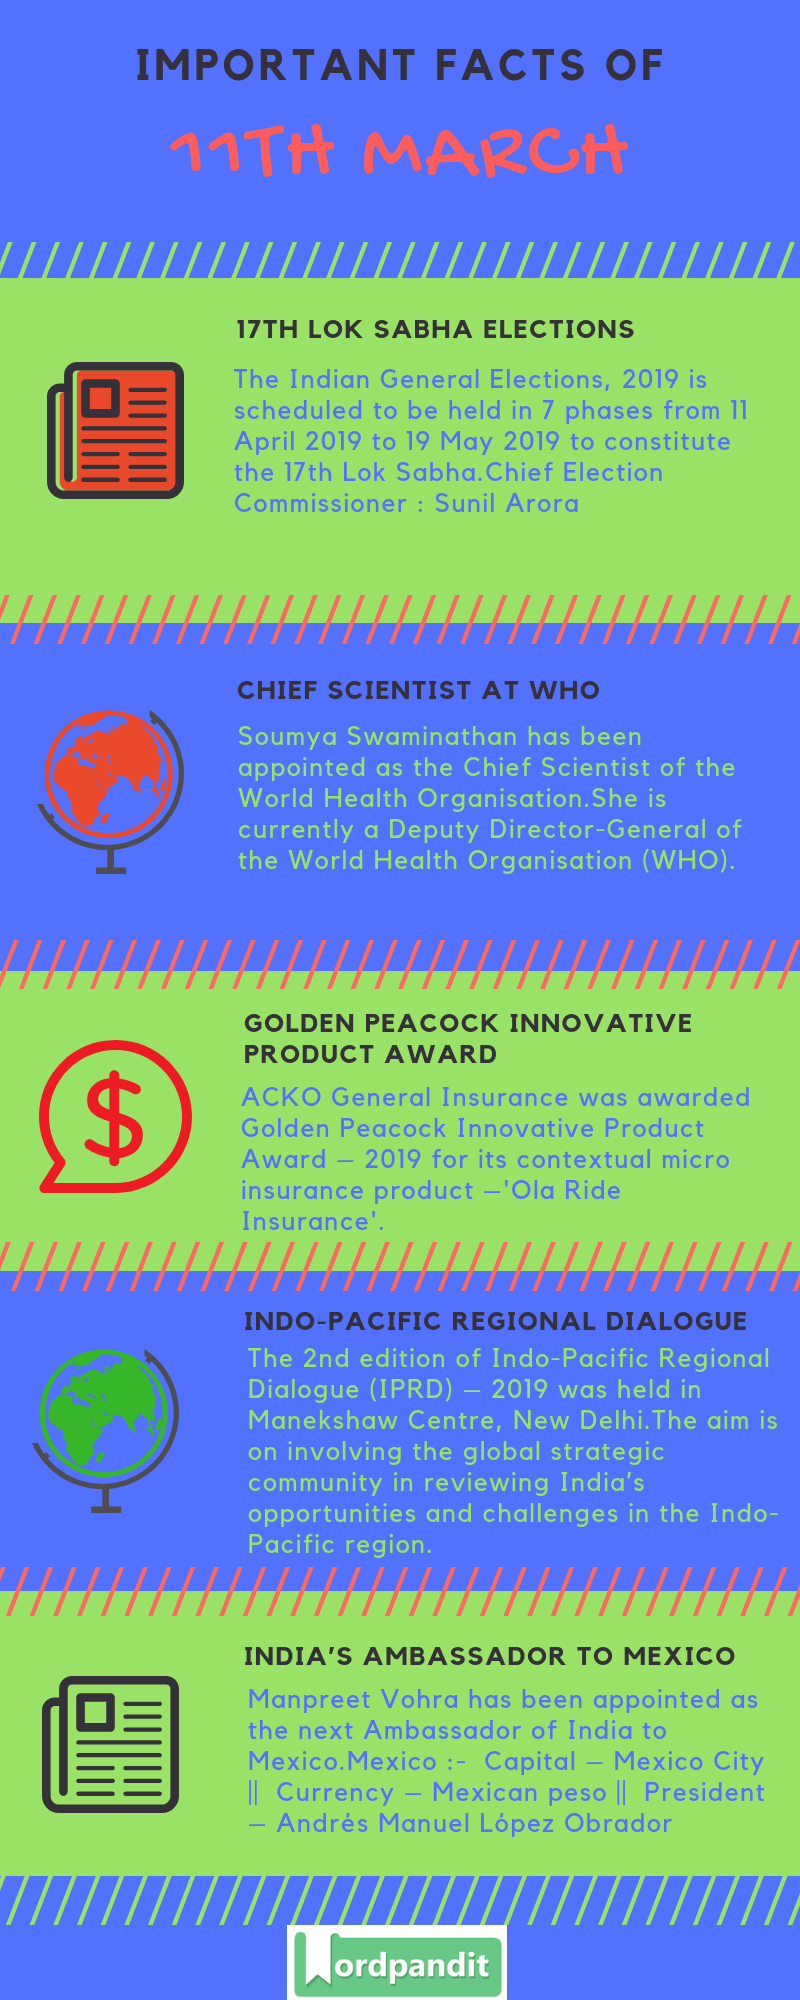 Daily Current Affairs 11 March 2019 Current Affairs Quiz 11 March 2019 Current Affairs Infographic